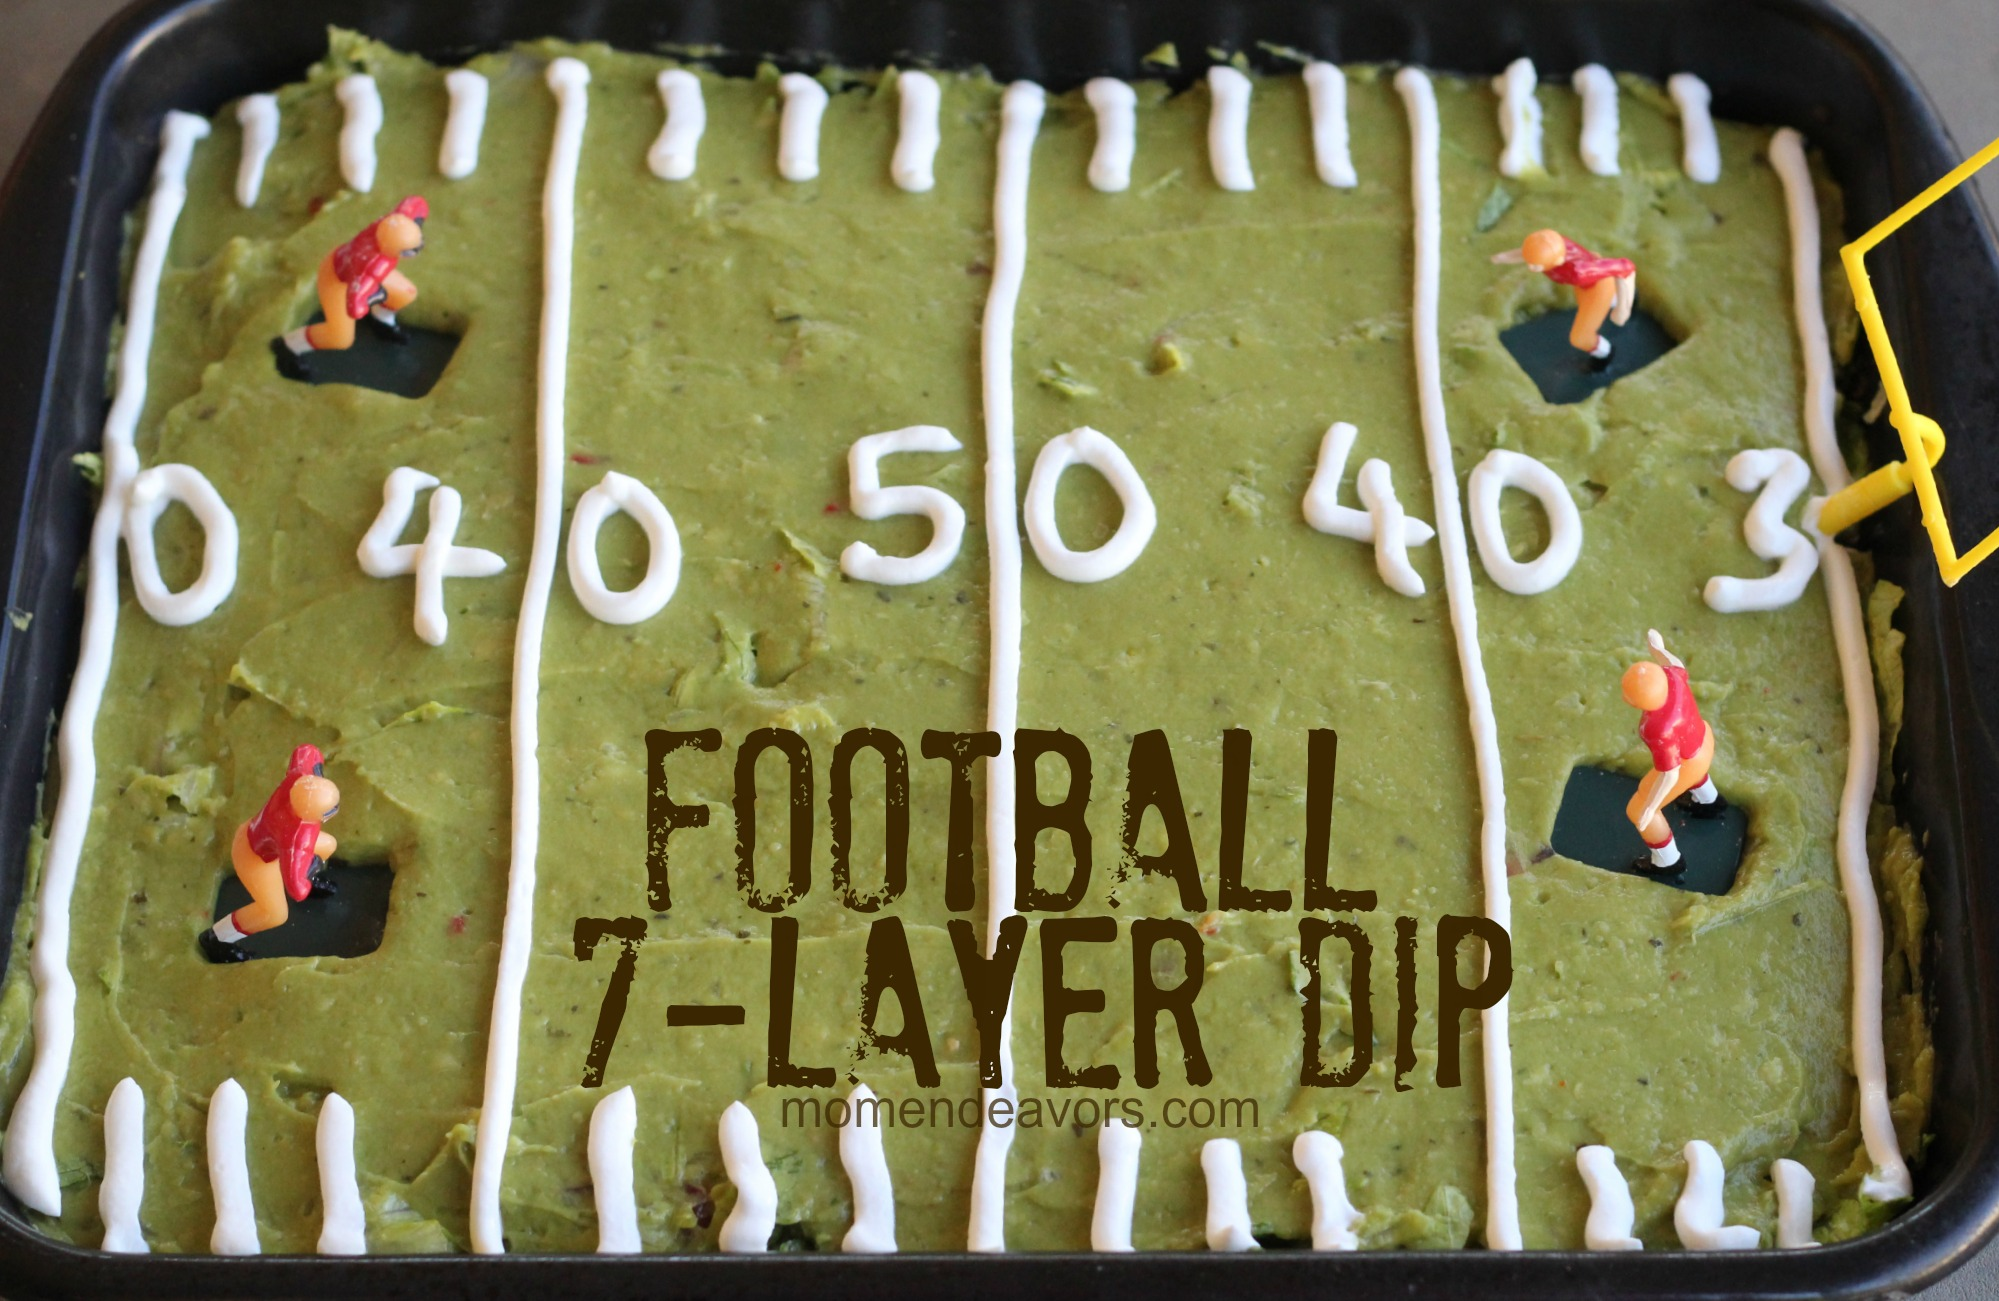 Football 7-Layer Dip